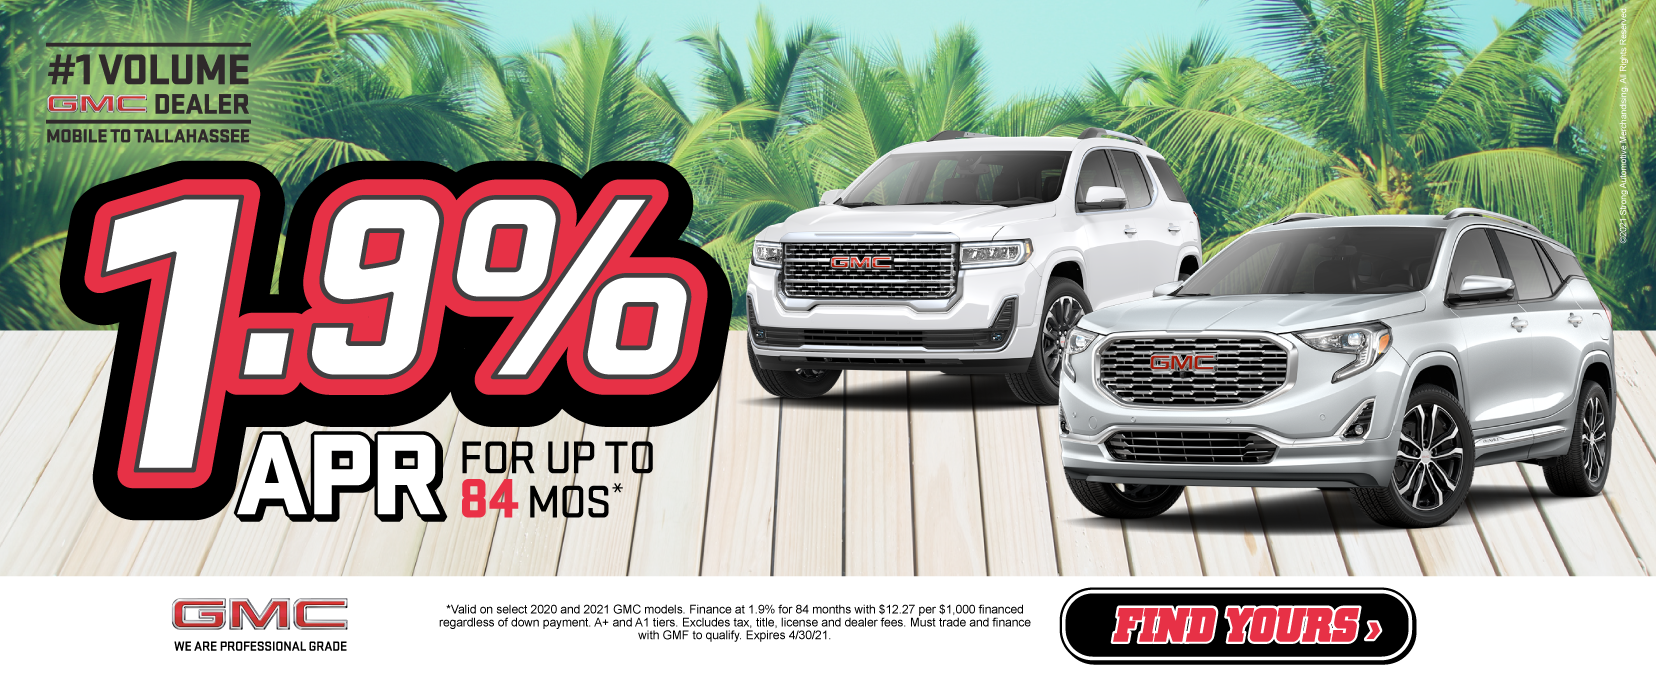 GMC 1.9% APR for up to 84 months